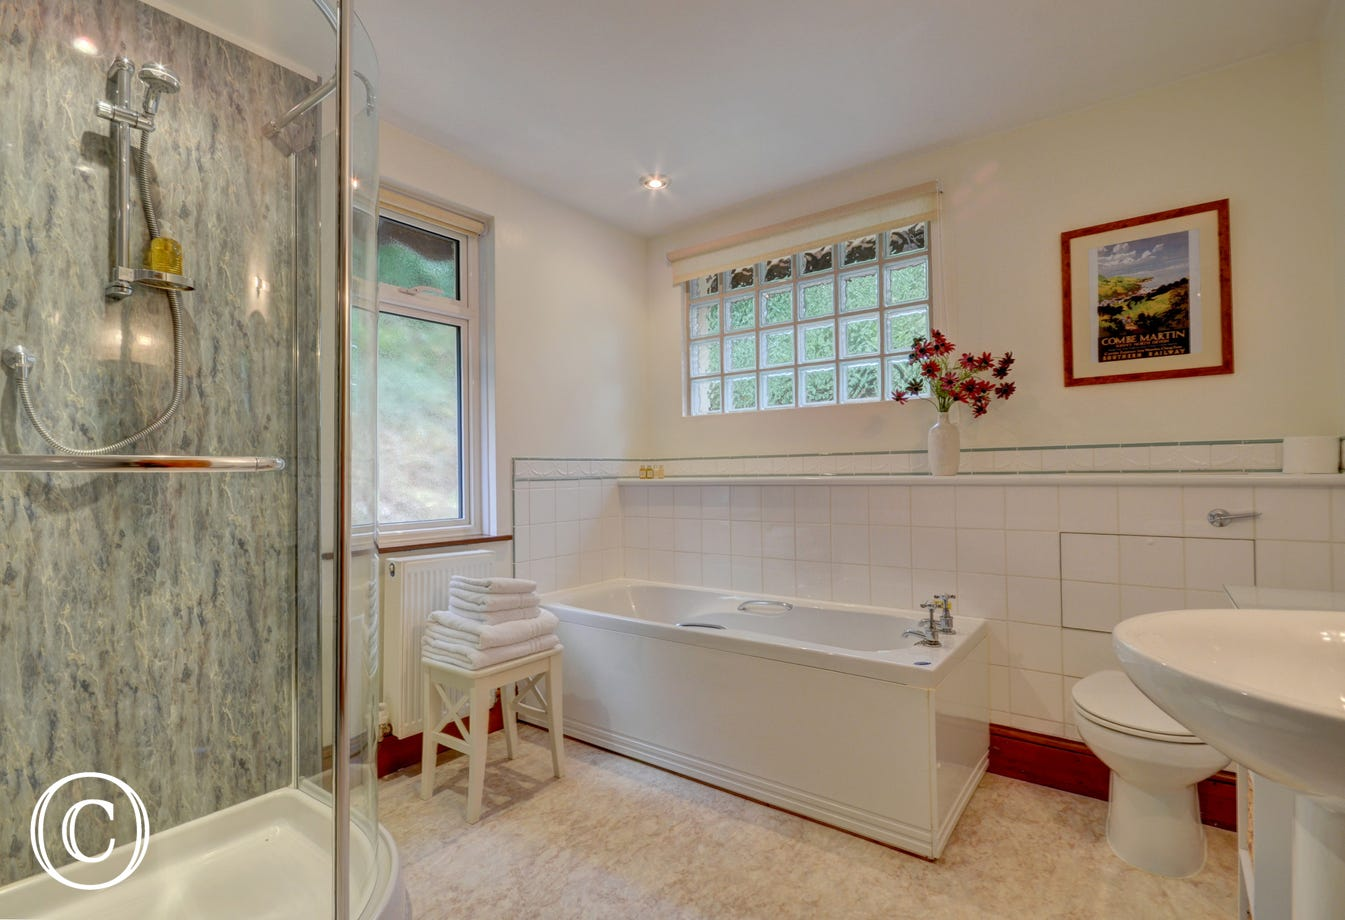 Spacious ensuite bathroom with bath and walk-in shower